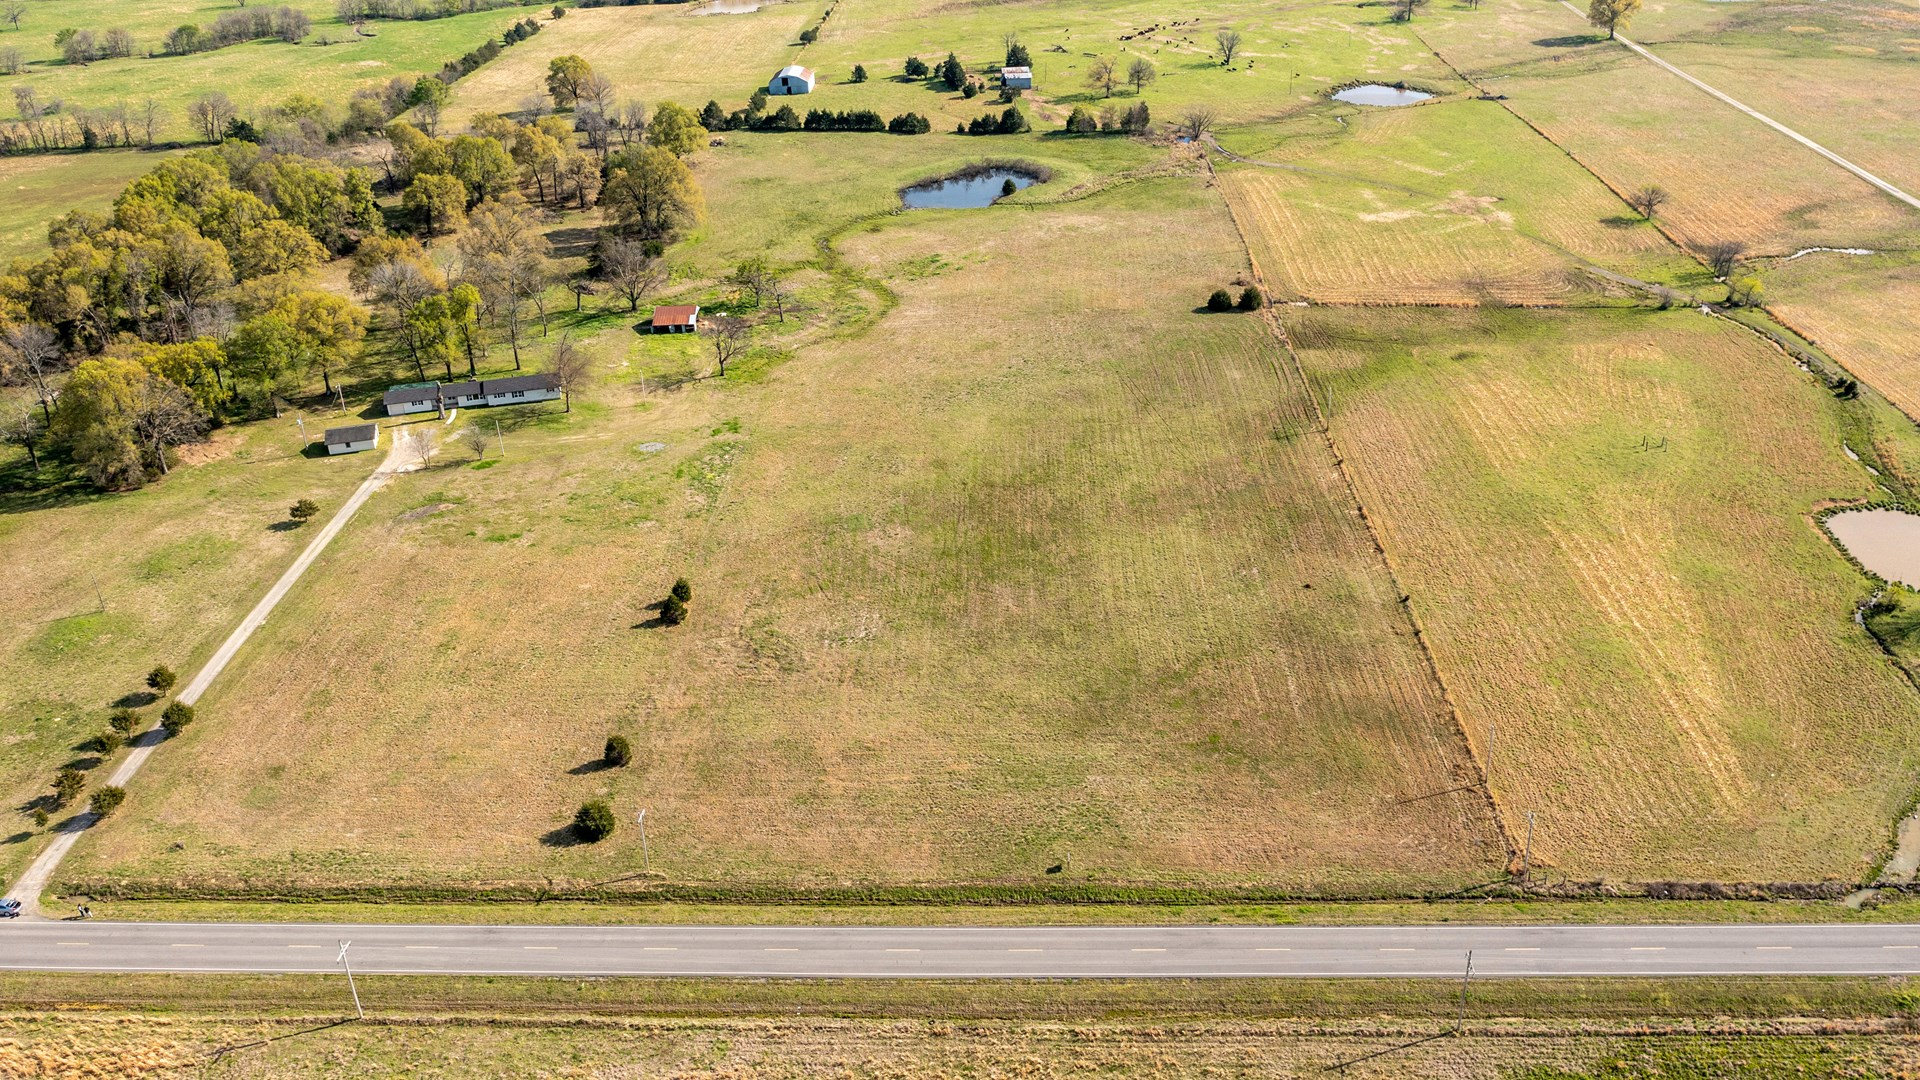 20 ACRES NEAR POTEAU, OK